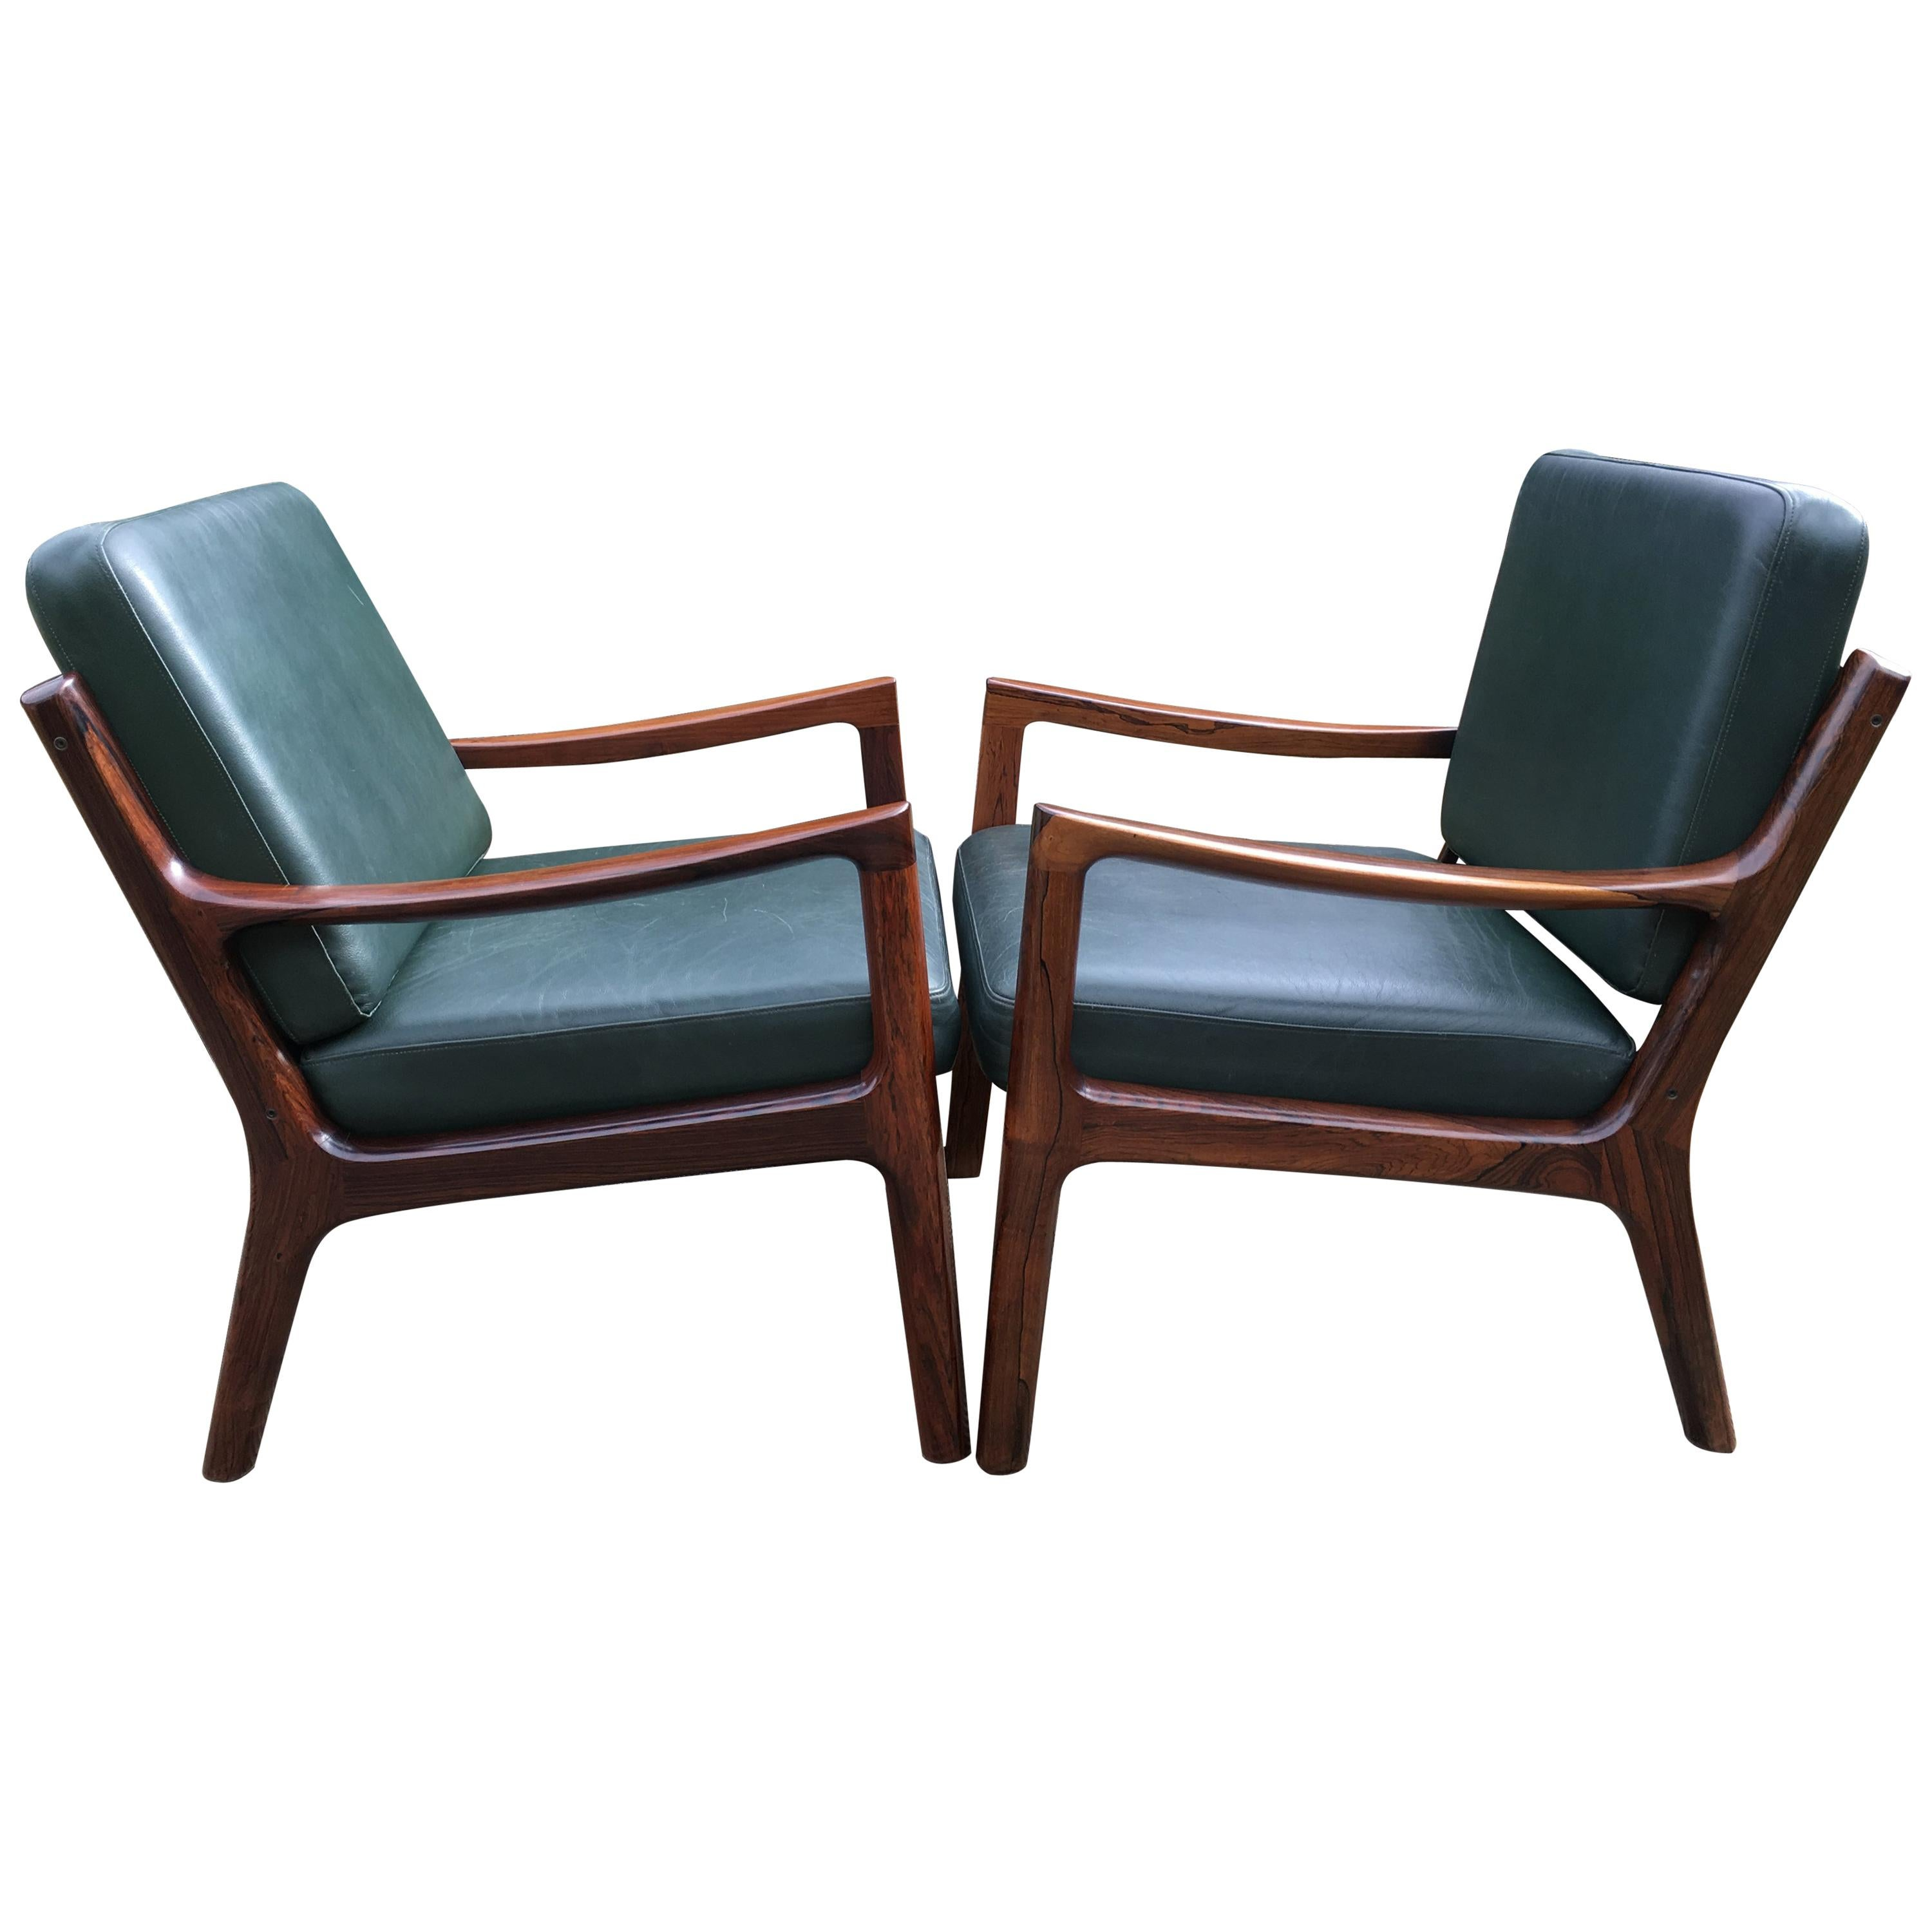 Pair of 'Senator' Chairs by Ole Wanscher for France and Son